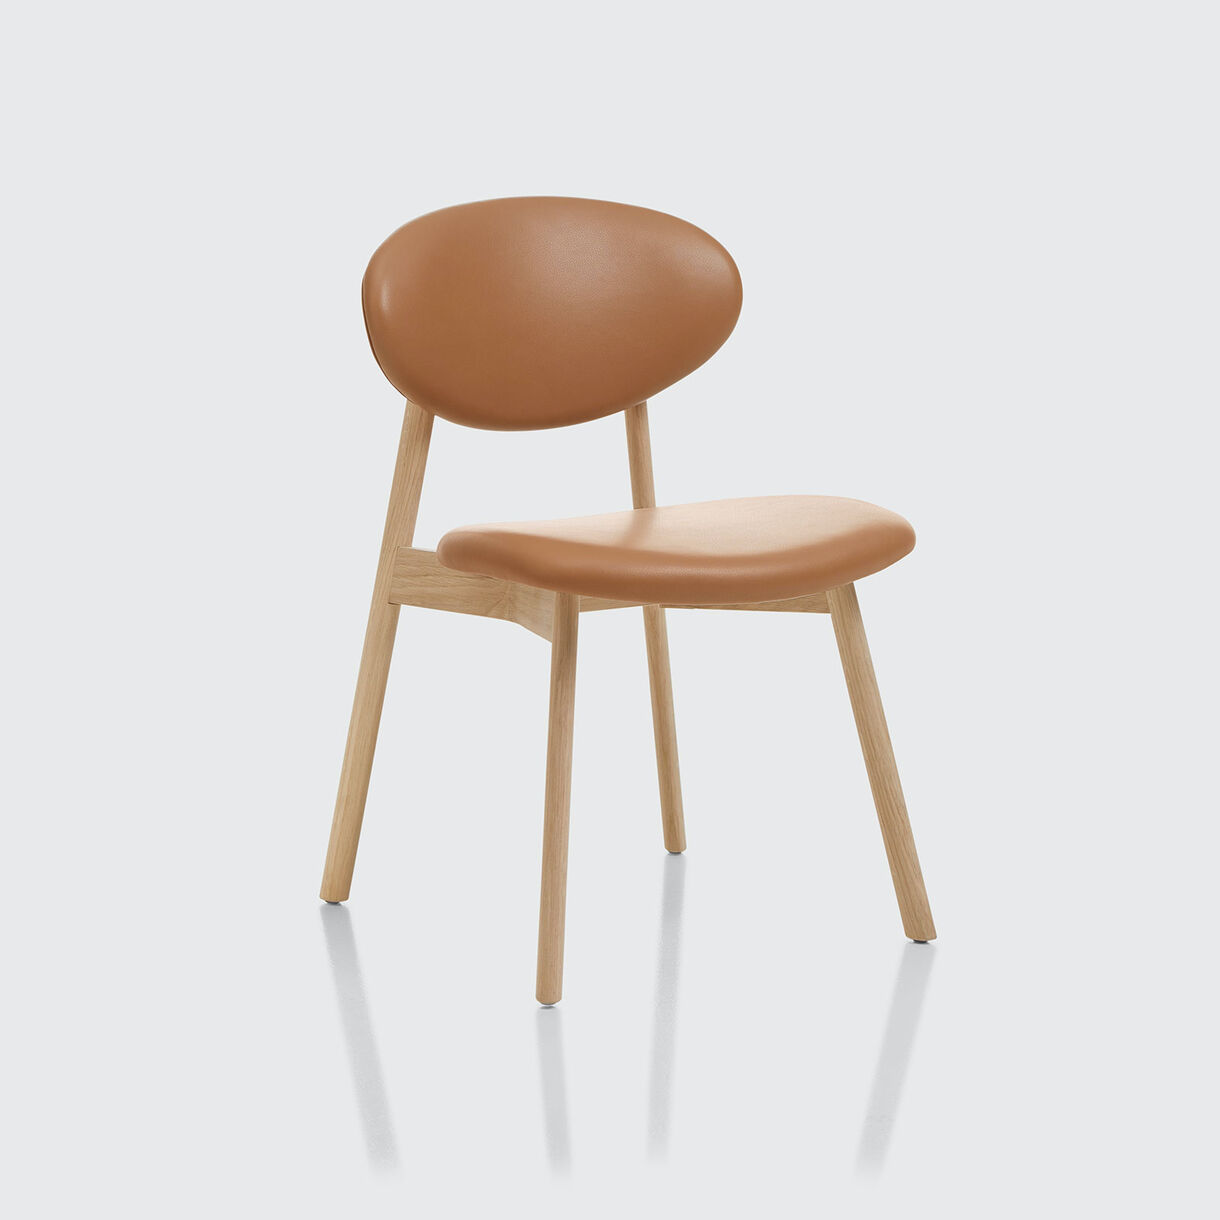 Ovoid Chair